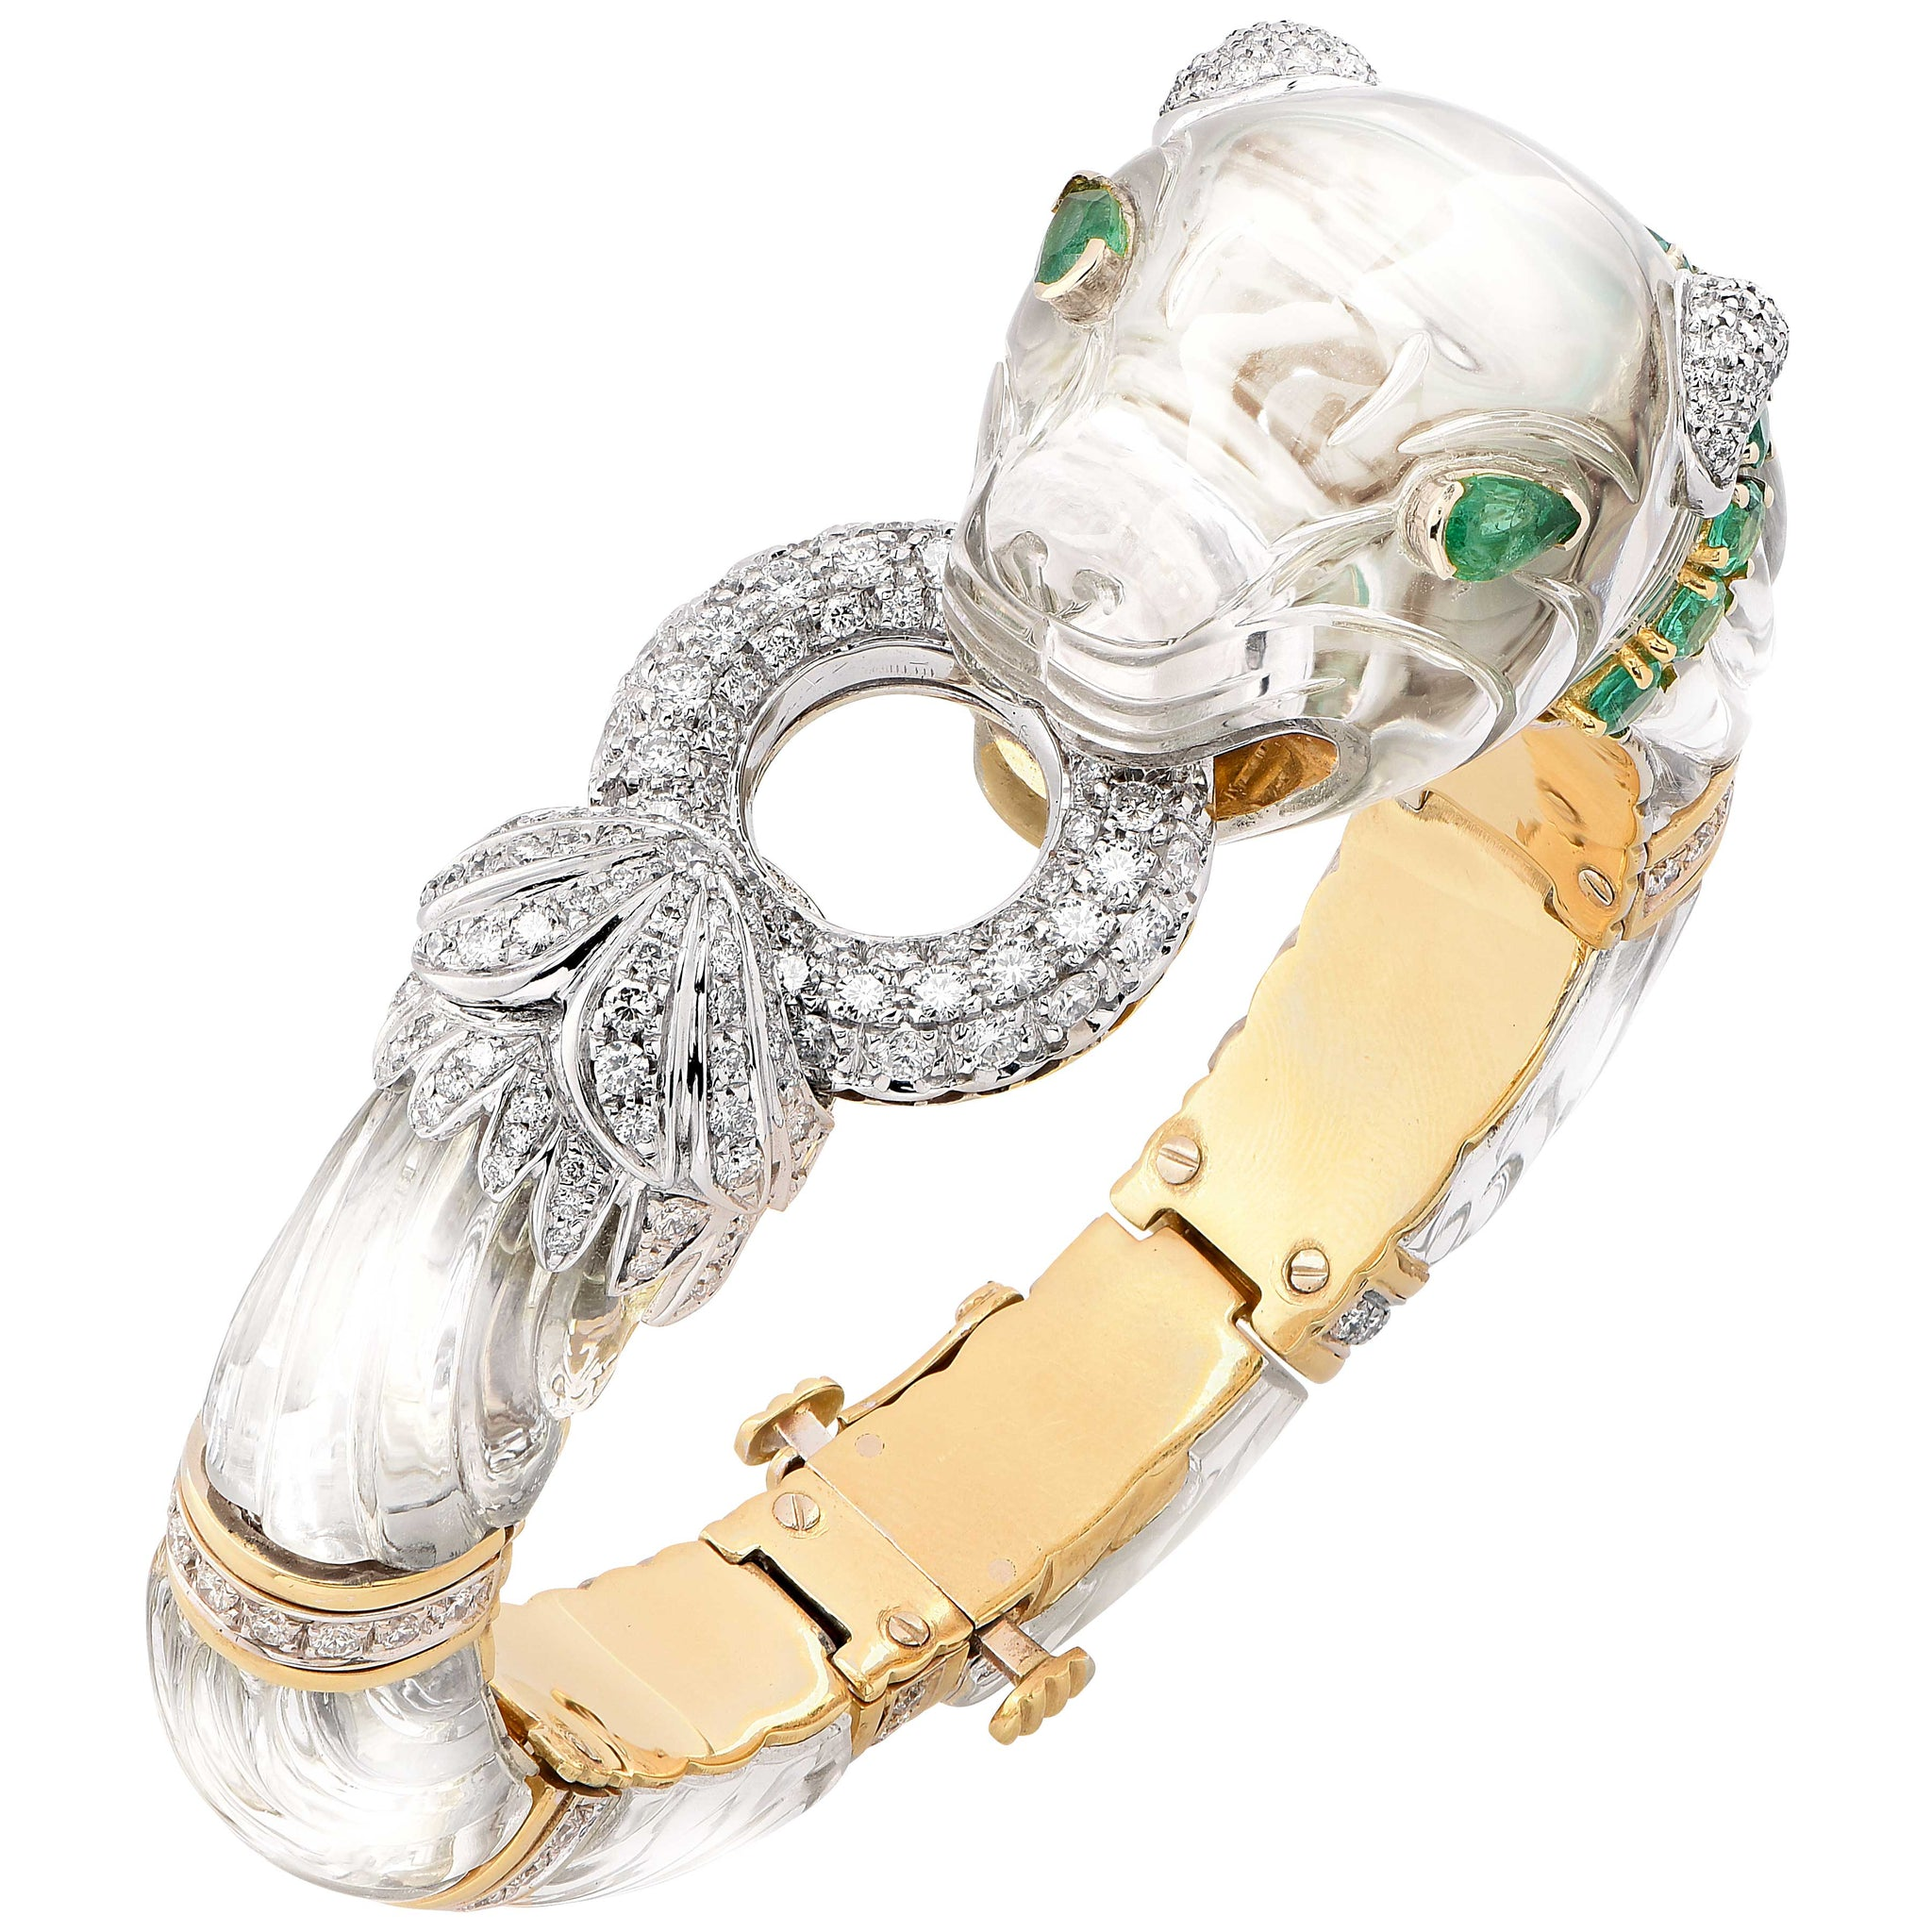 jewelers stephen each wiseley platinum bracelet product cut diamond emerald